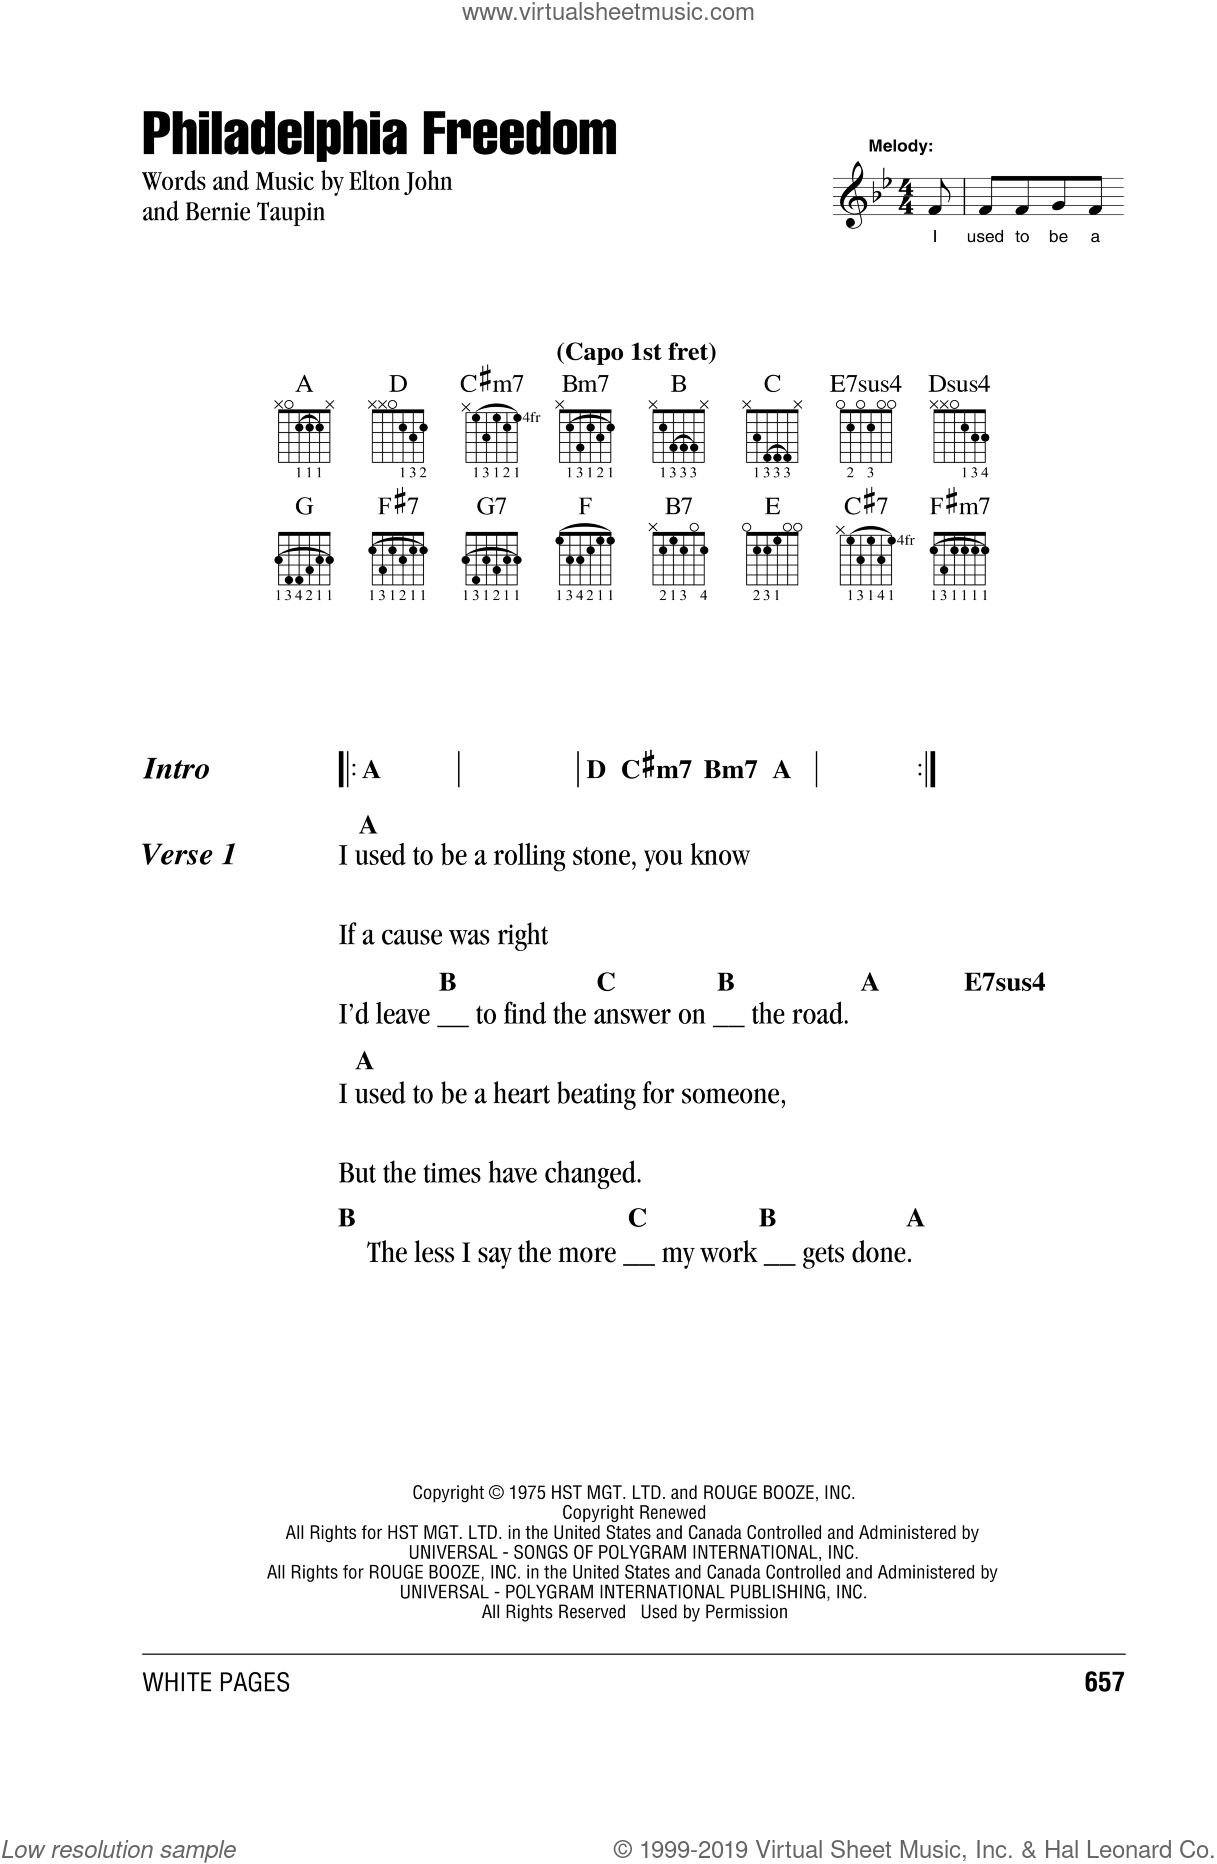 Philadelphia Freedom sheet music for guitar (chords) by Bernie Taupin